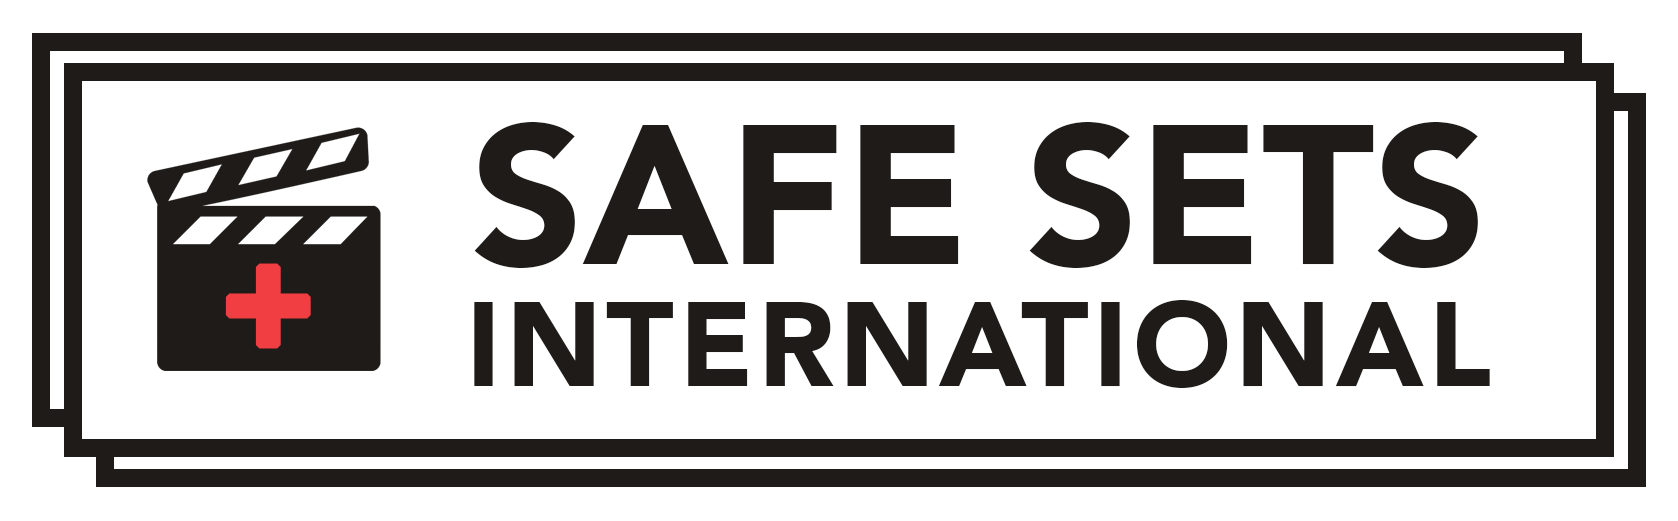 Safe Sets International - Promoting Set Safety in the age of COVID-19